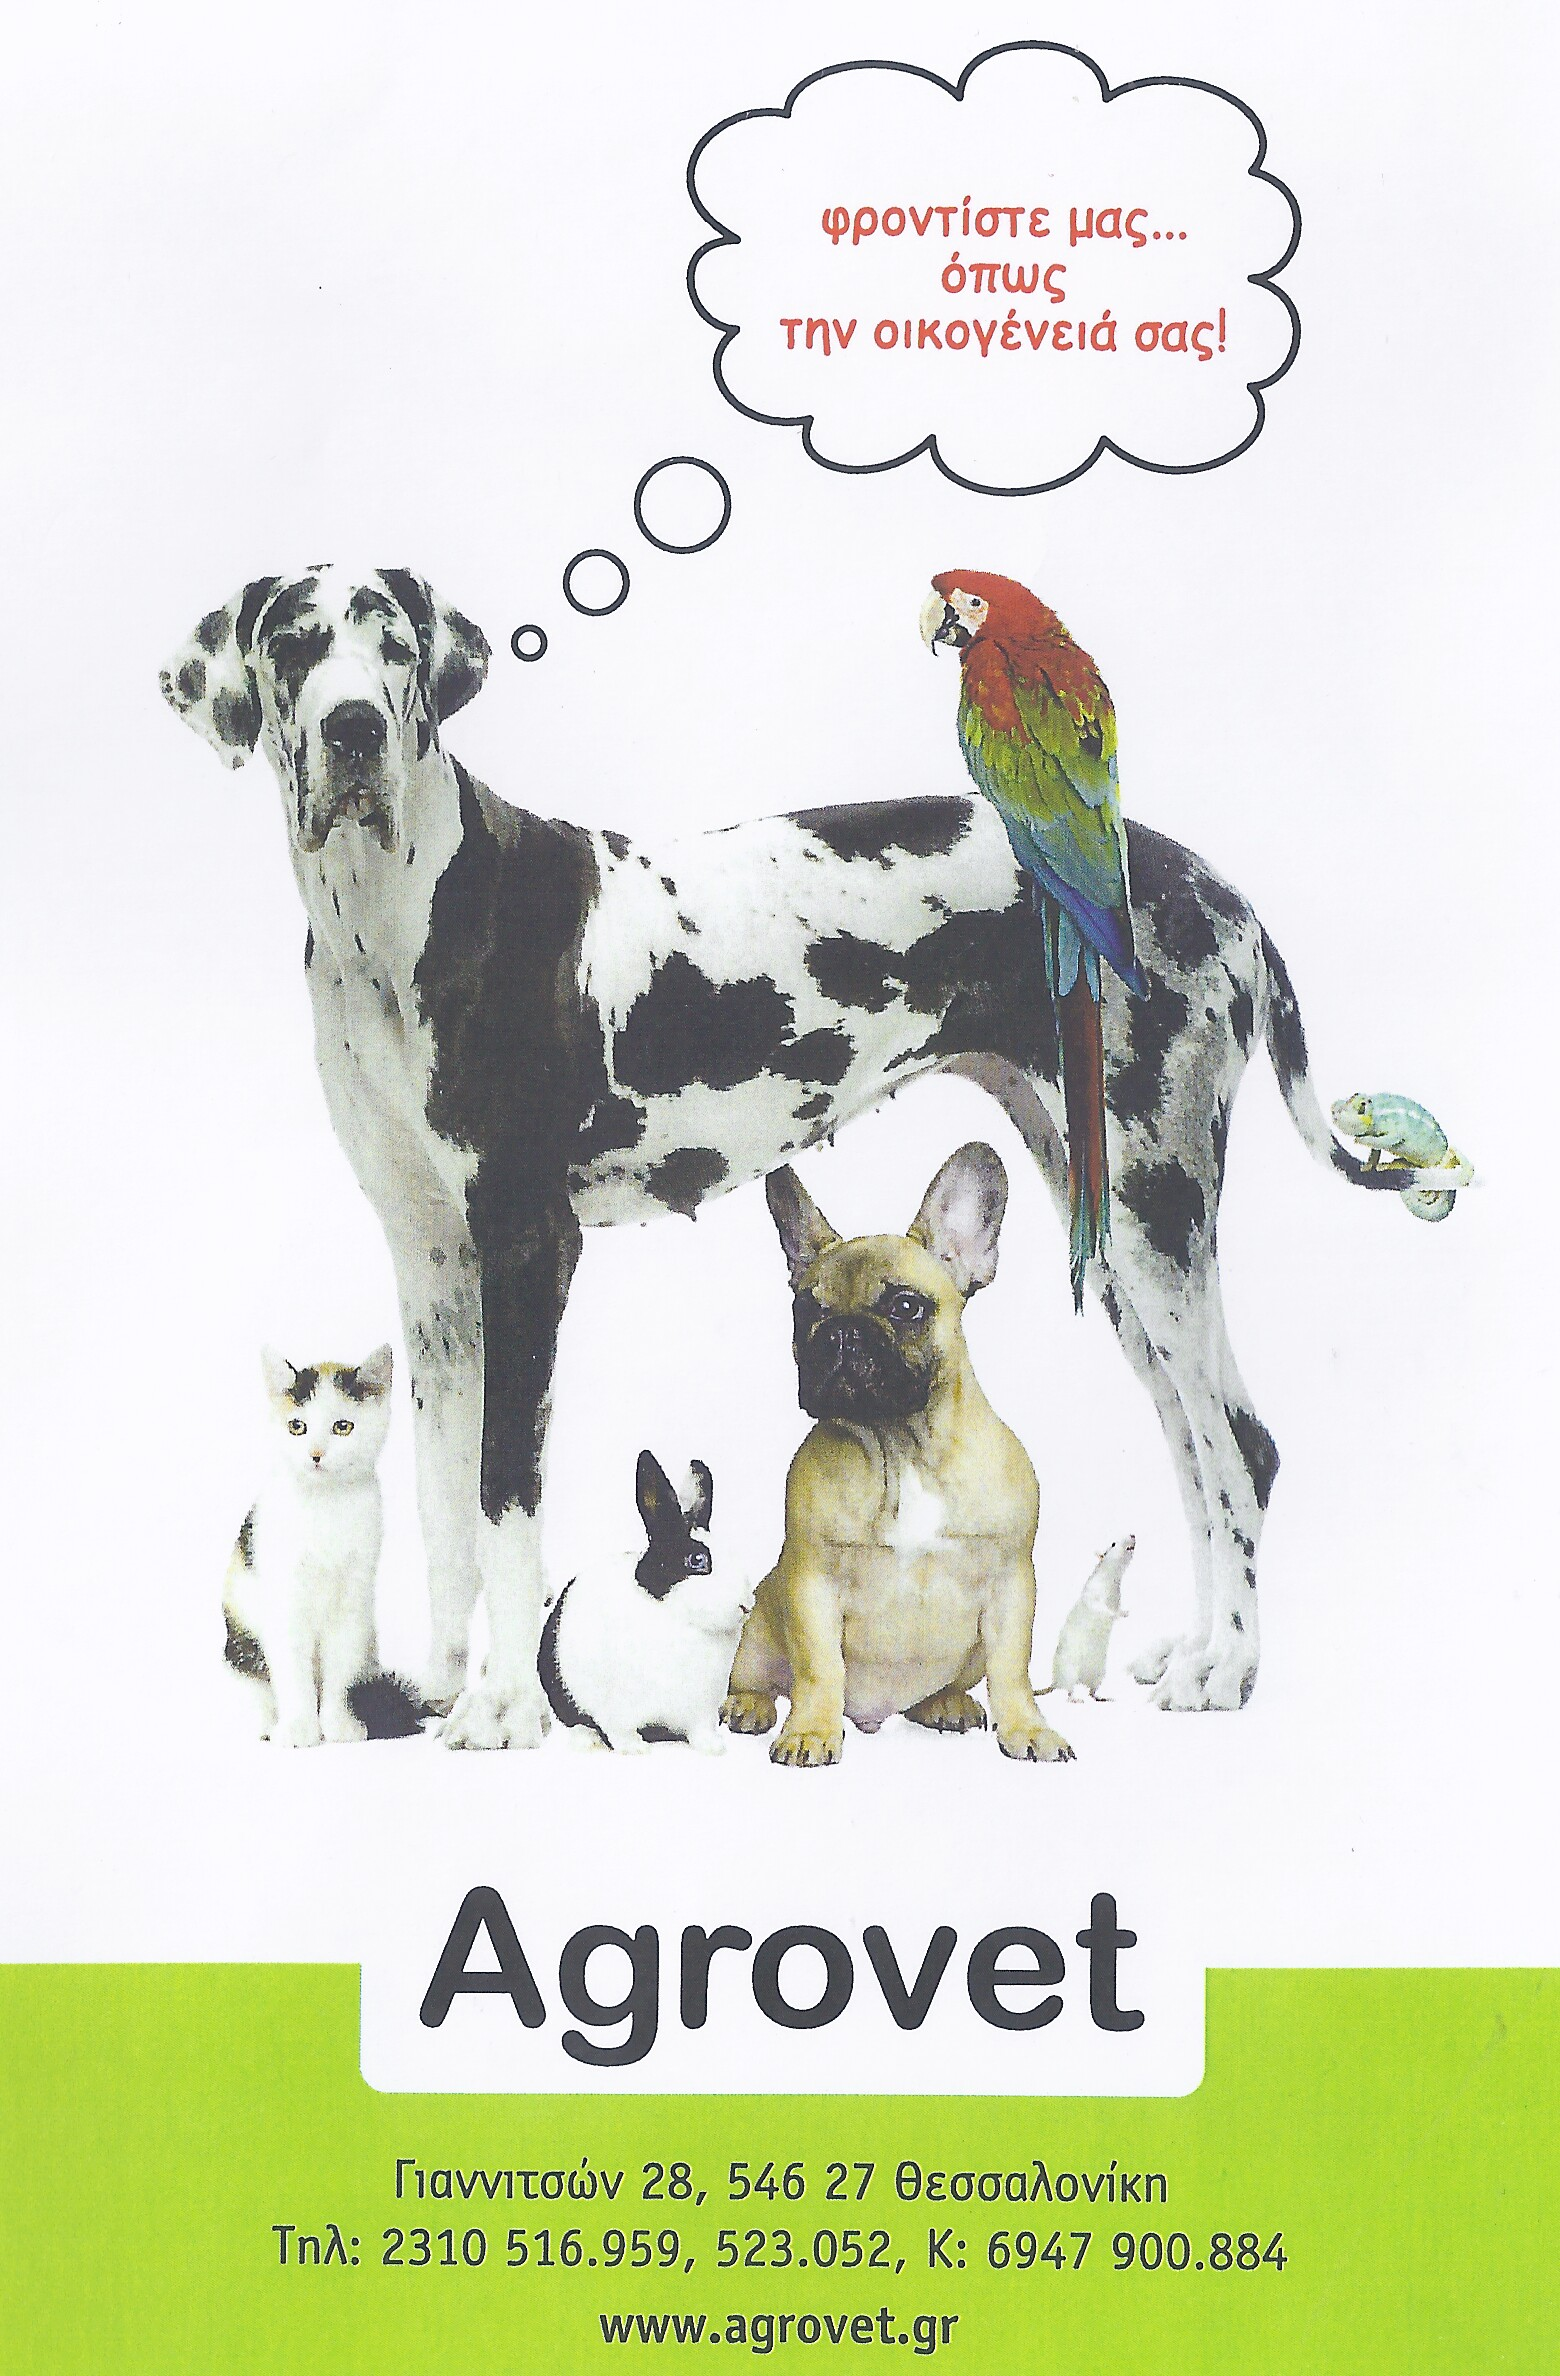 pet-shops-agrovet-thessaloniki-2.jpg